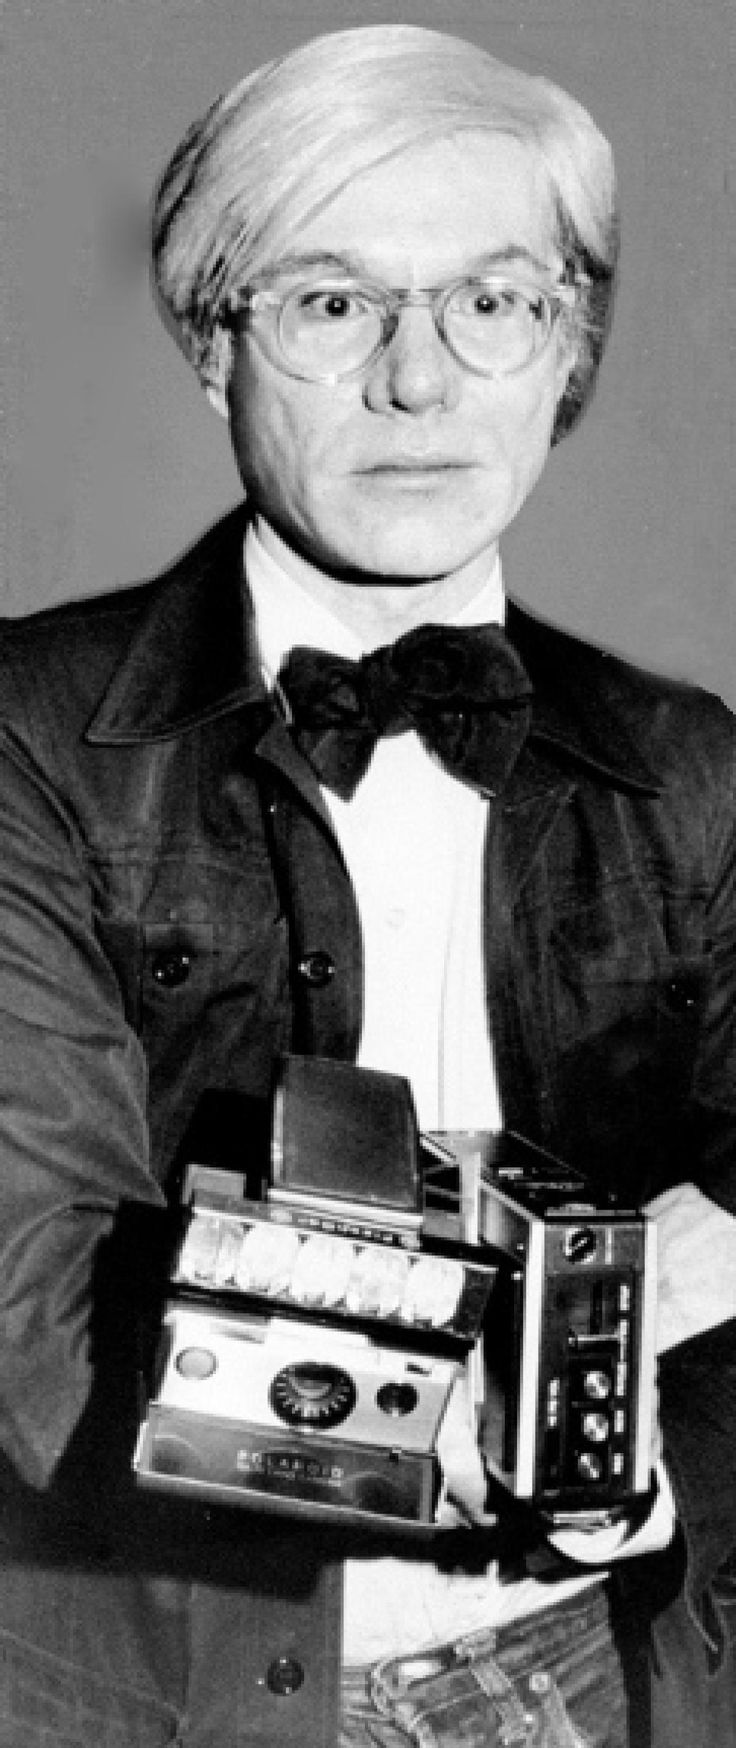 1973: Andy Warhol with tools of his trade: a Polaroid camera and tape recorder.